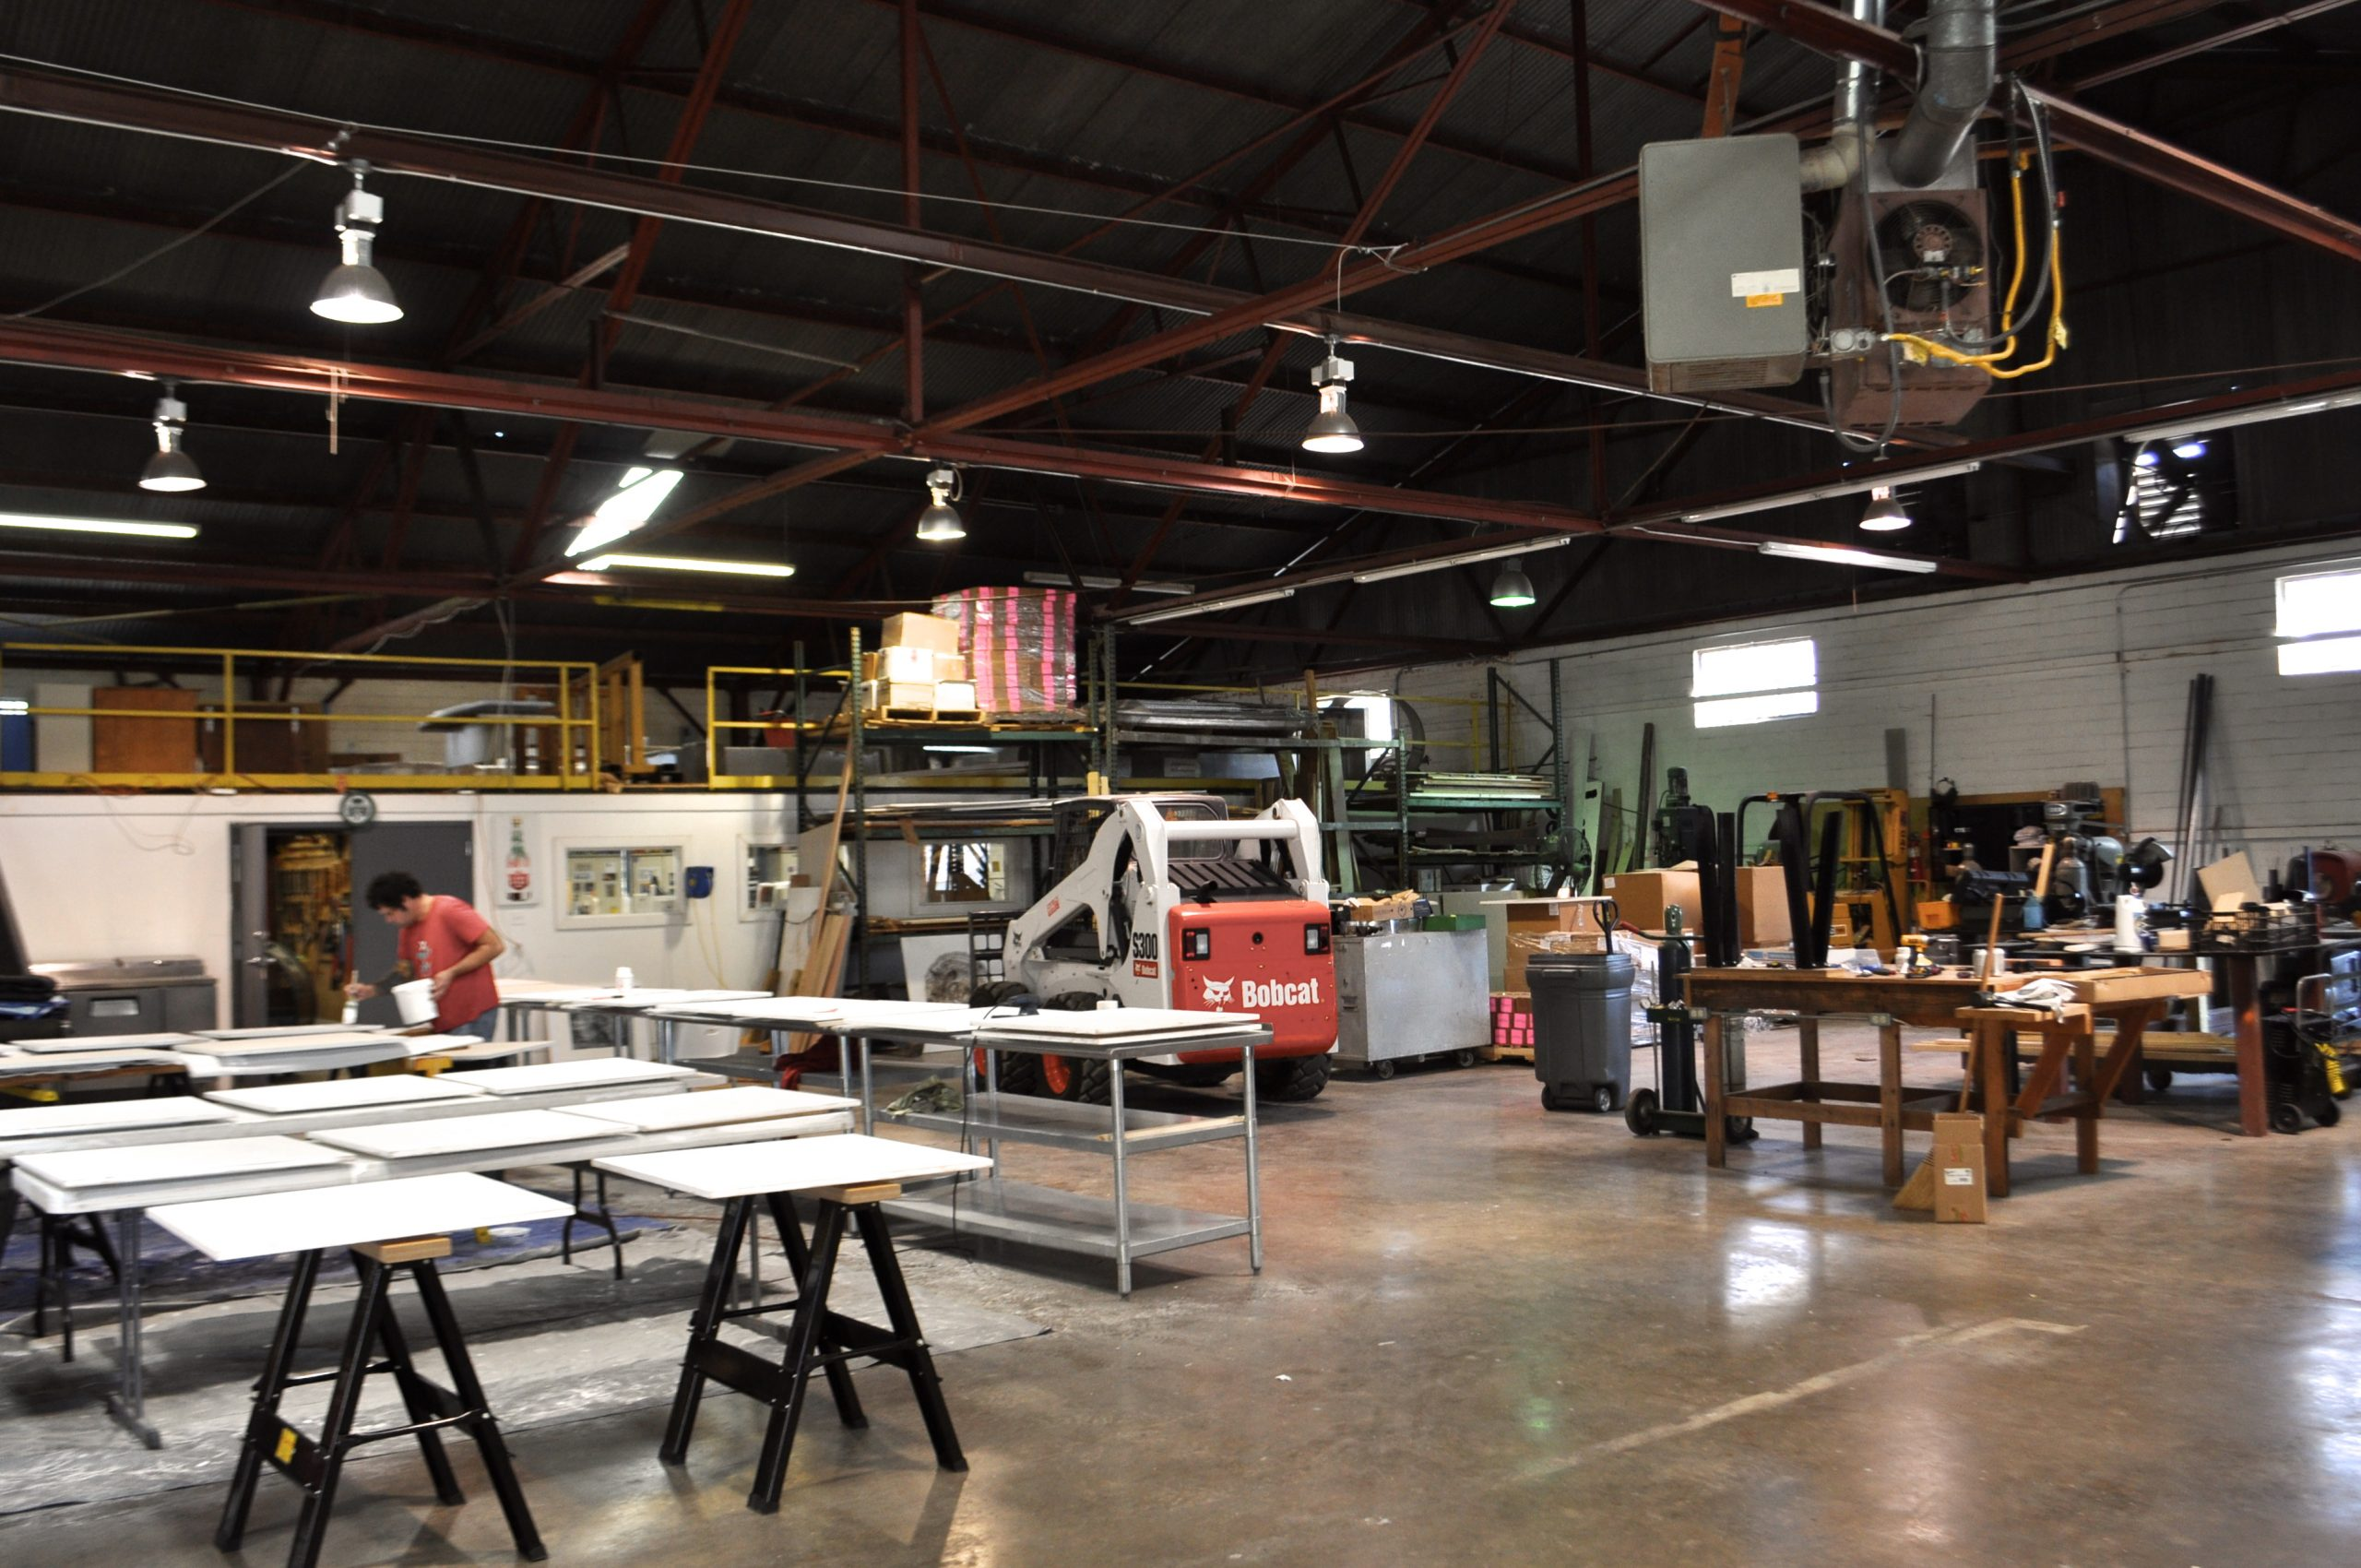 """Bill FitzGibbons' warehouse-like studio space at times feels more like a construction zone than an art studio. """"The size of your studio affects the size of your art,"""" FitzGibbons said. Photo by Iris Dimmick."""